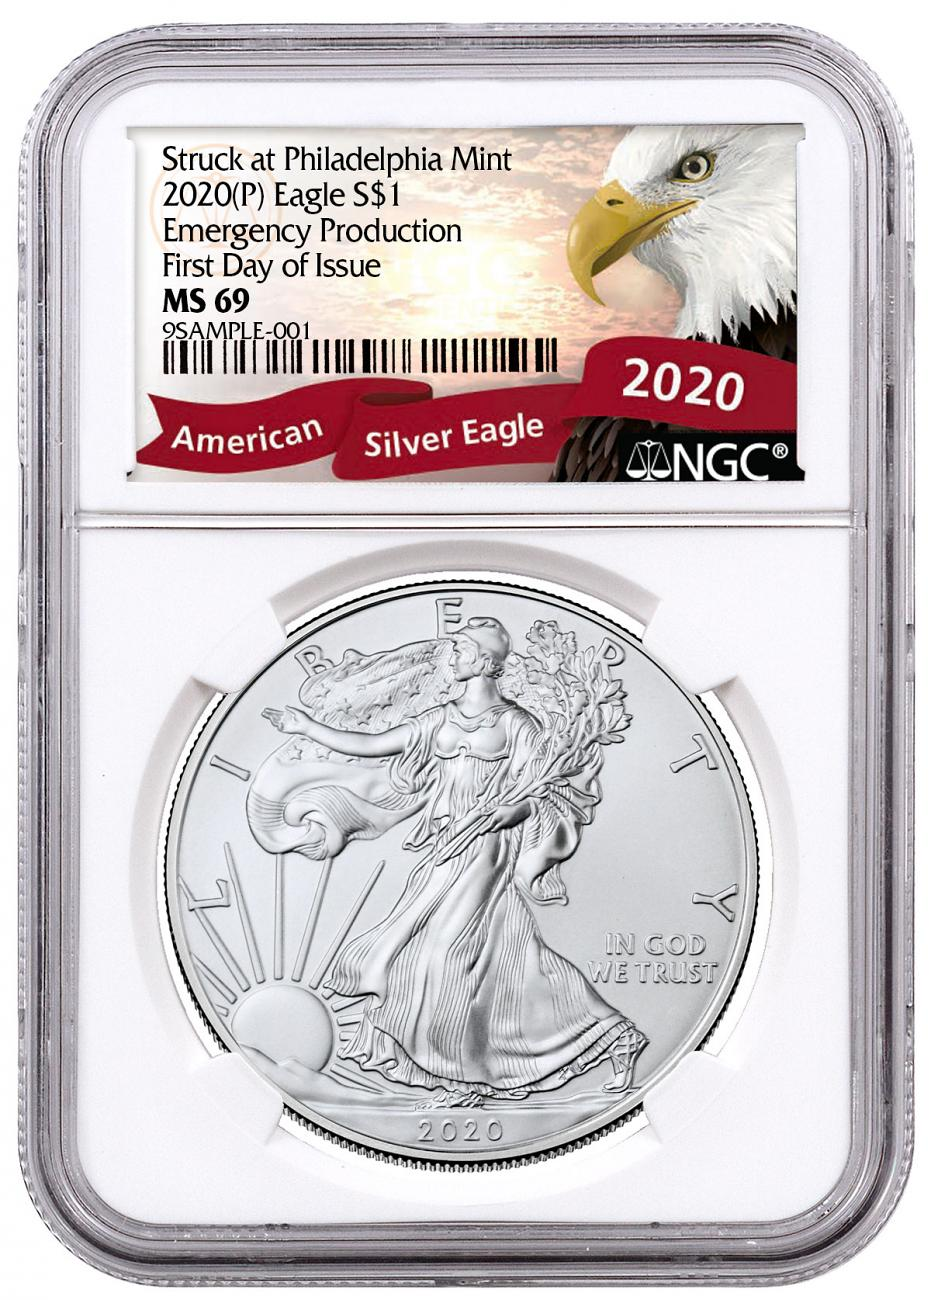 2020-(P) 1 oz Silver American Eagle Struck at Philadelphia $1 Coin NGC MS69 FDI Exclusive Eagle Label